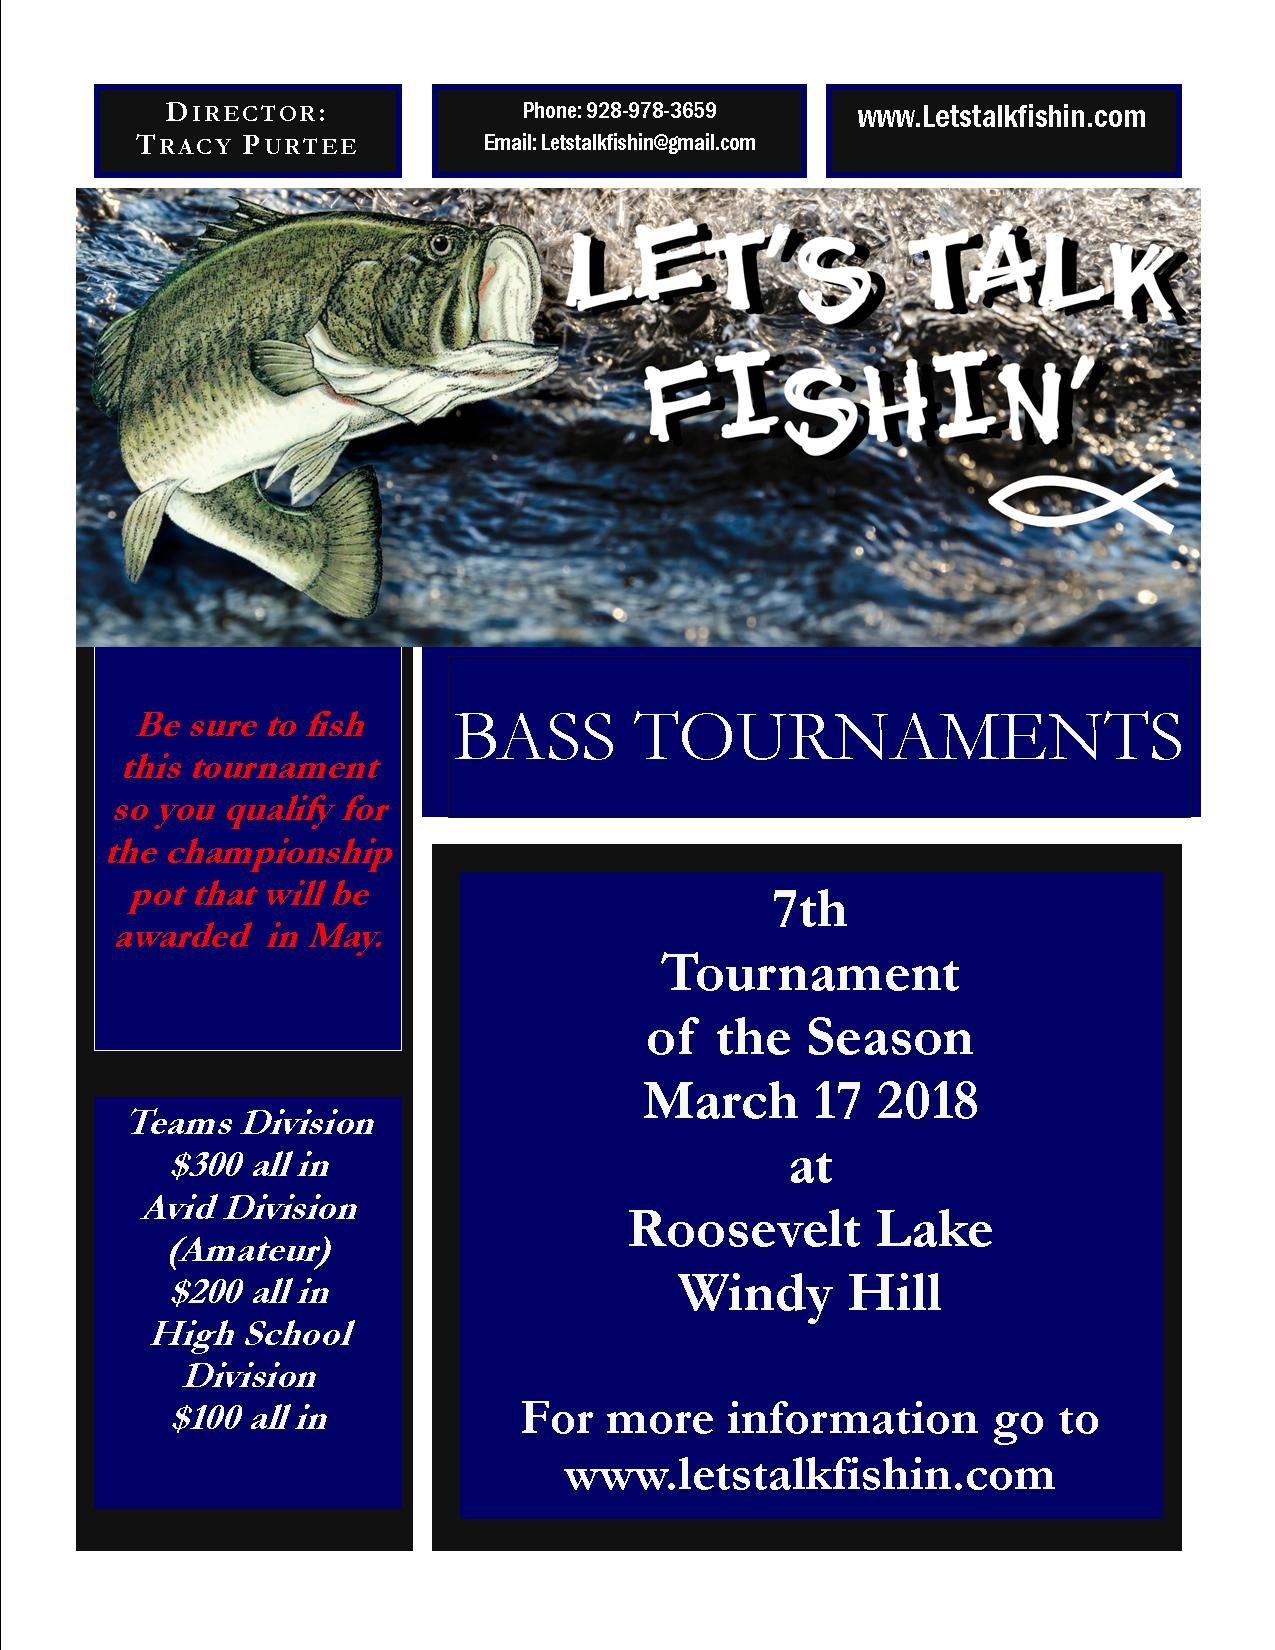 Click image for larger version  Name:7th Tournament.jpg Views:1916 Size:283.6 KB ID:96826